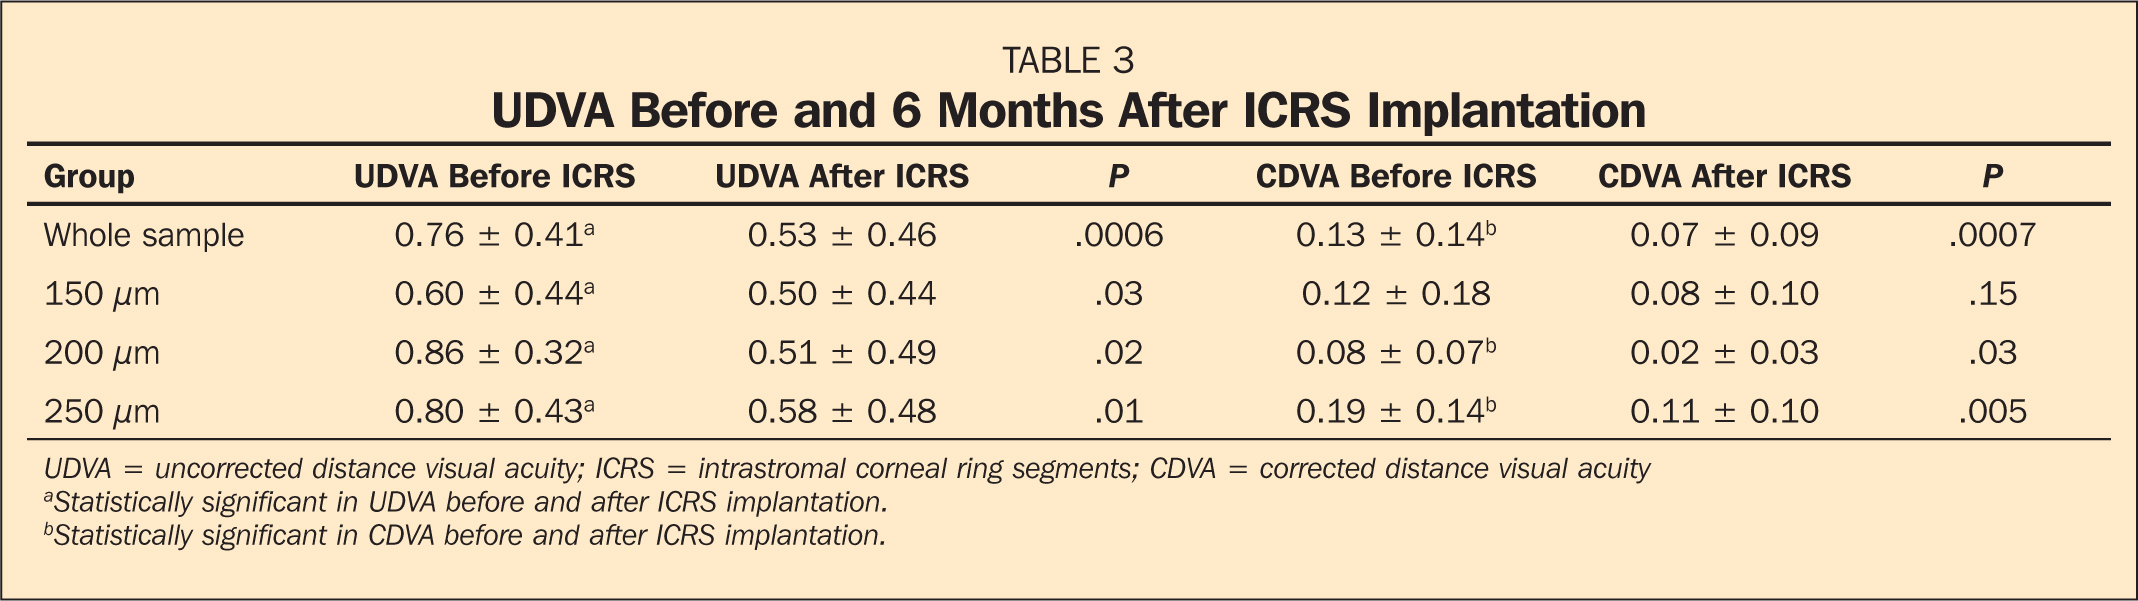 UDVA Before and 6 Months After ICRS Implantation